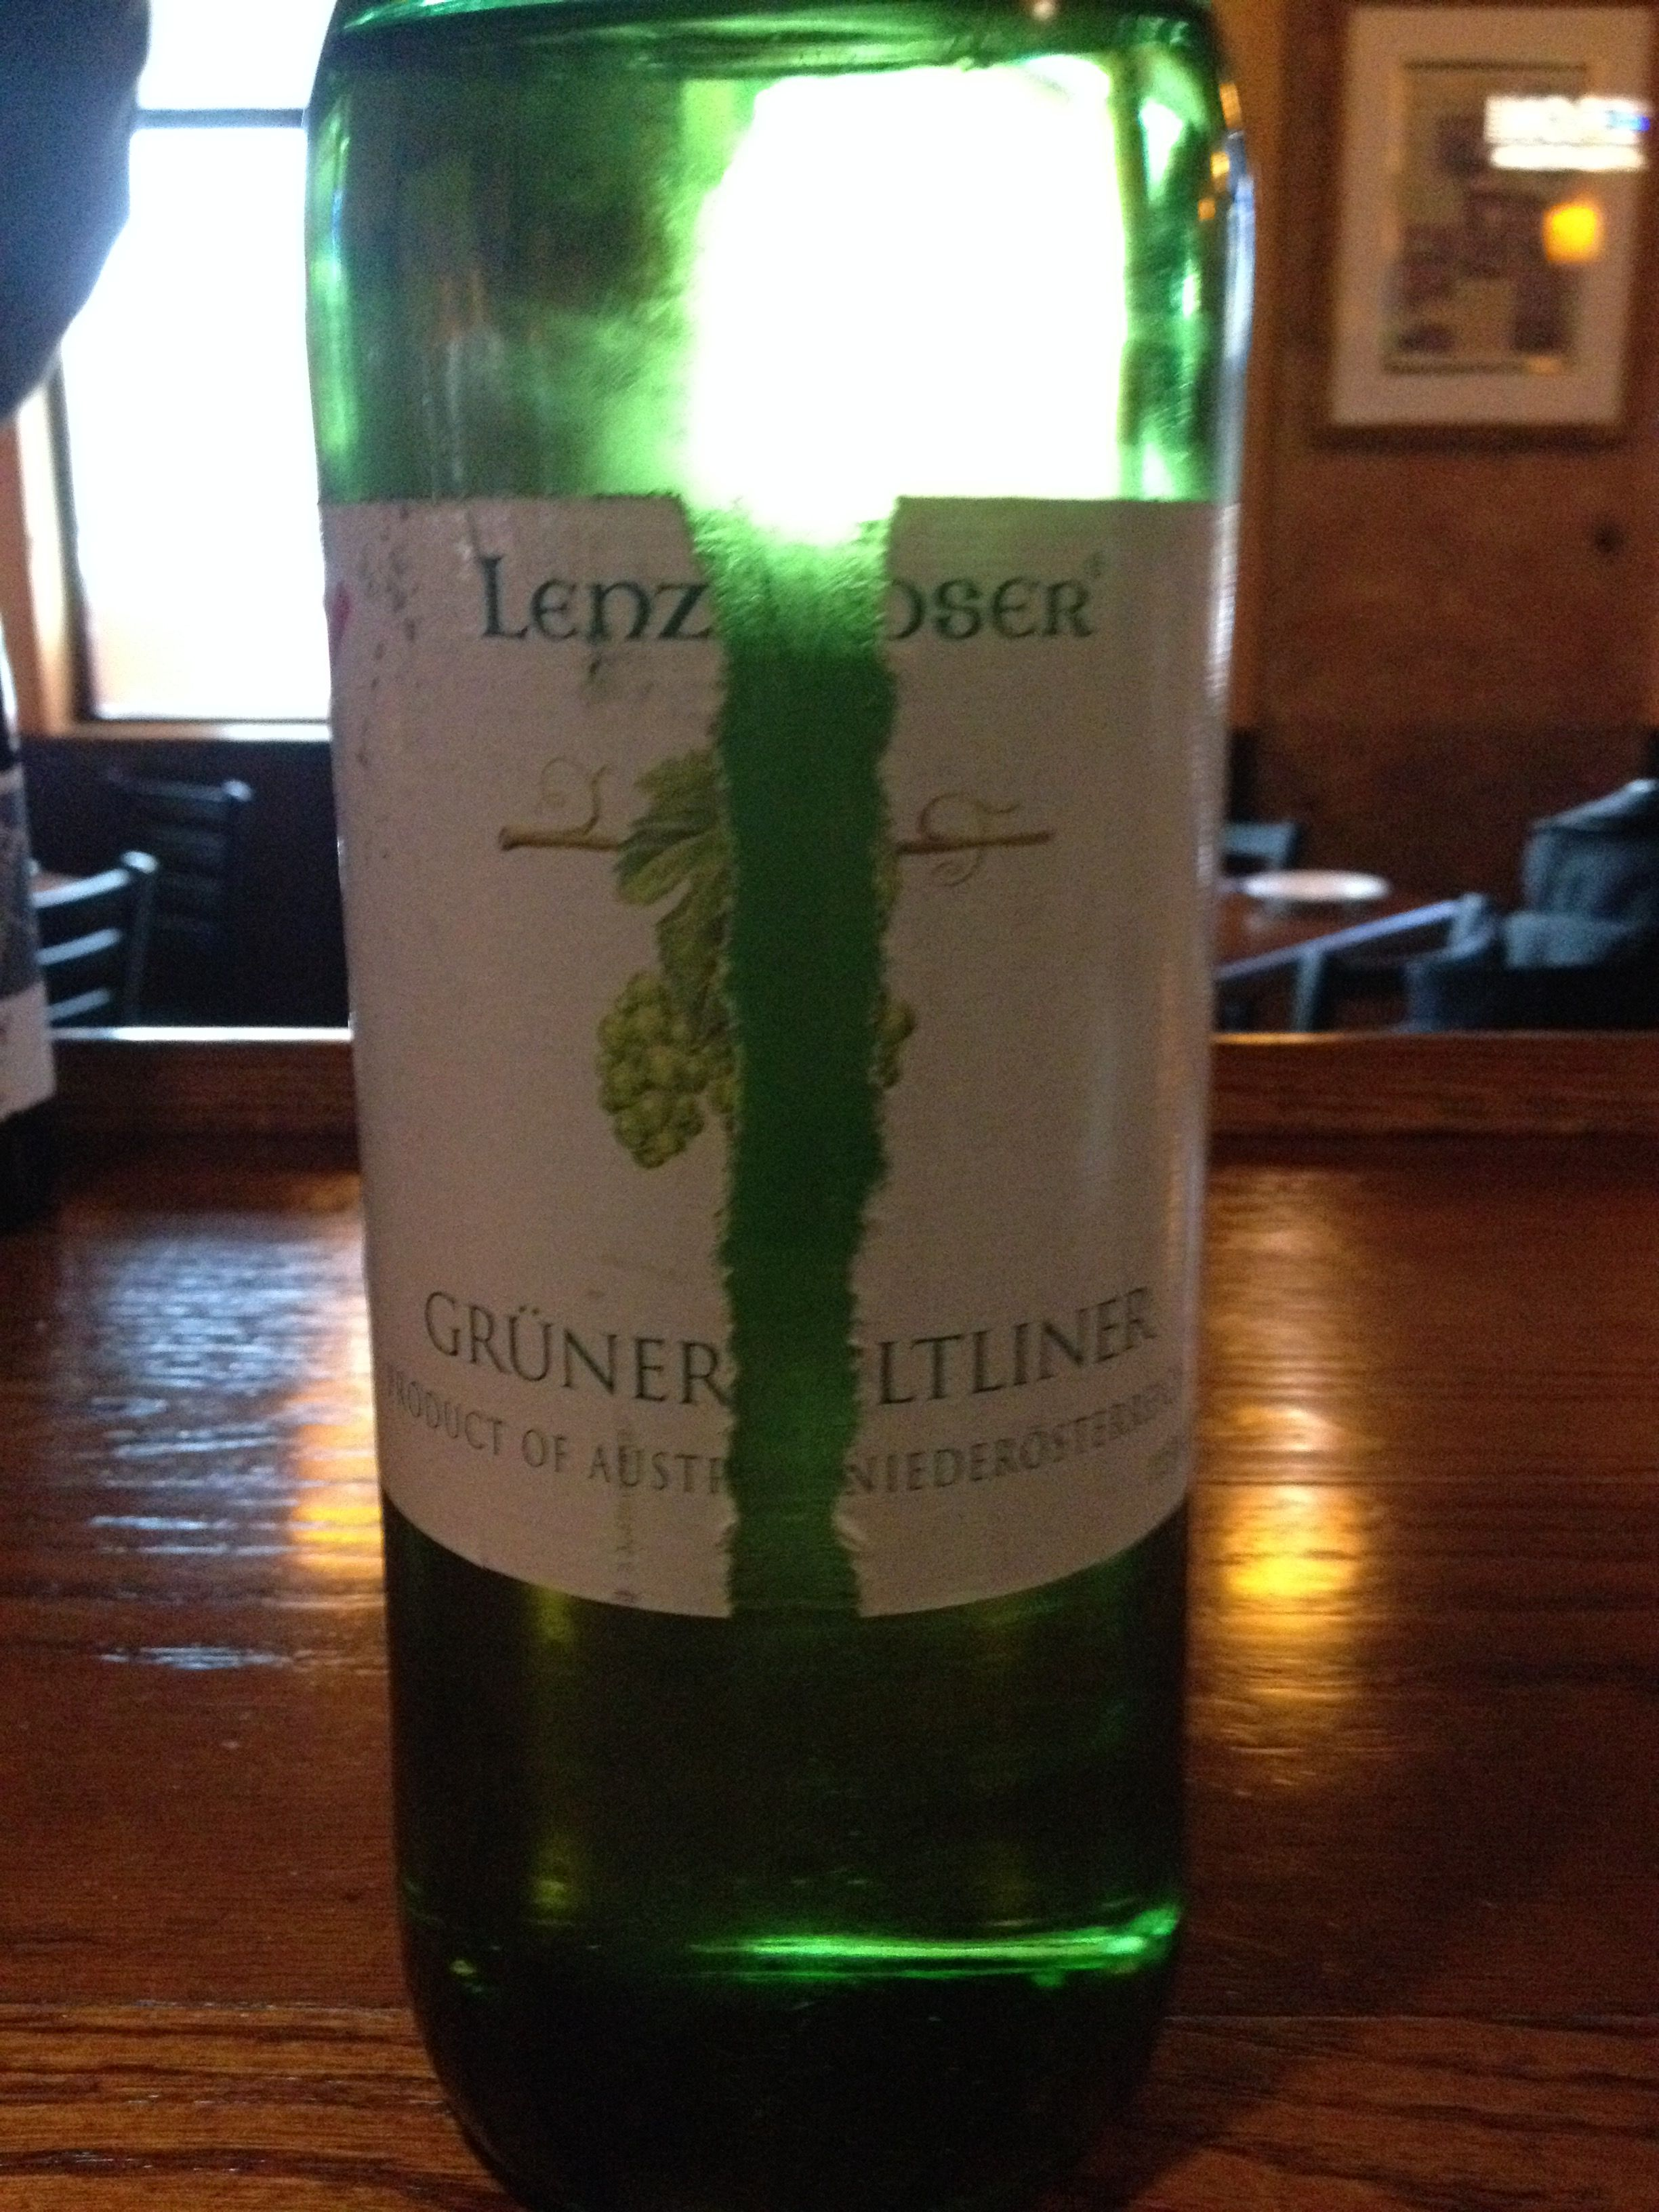 Lenz Mosser Gruner Veltliner - Light and refreshing with notes of oil, minerals, some light white fruits. Very light on the palate, excellent as an opening course wine in the summer.